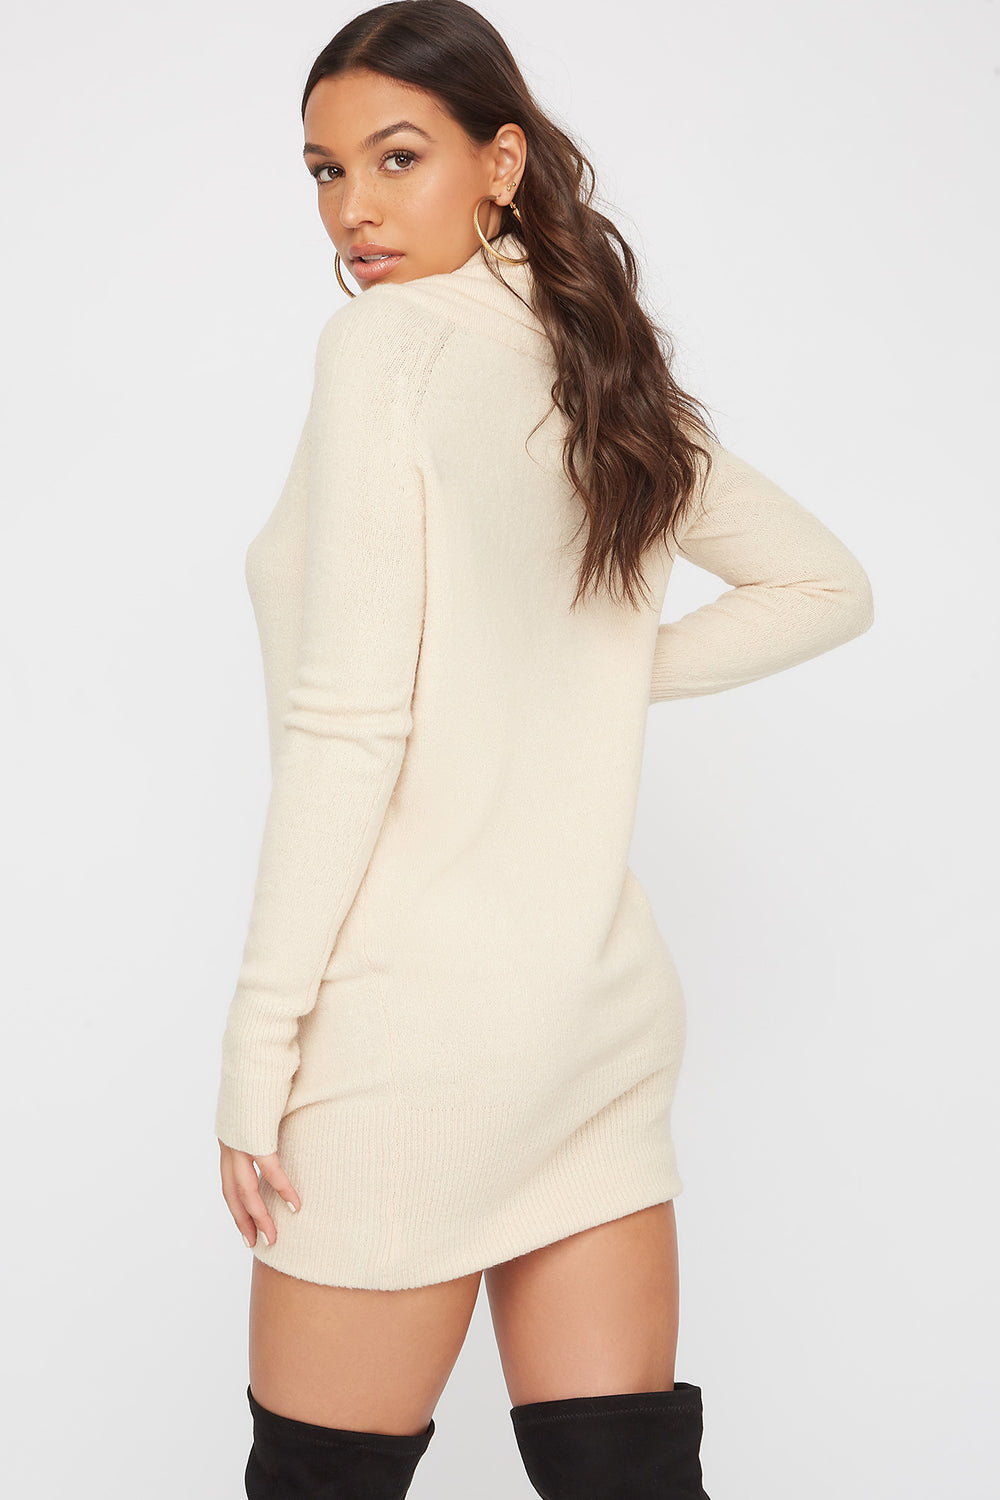 2-Way Mossy Cowl Neck Sweater Dress Oatmeal